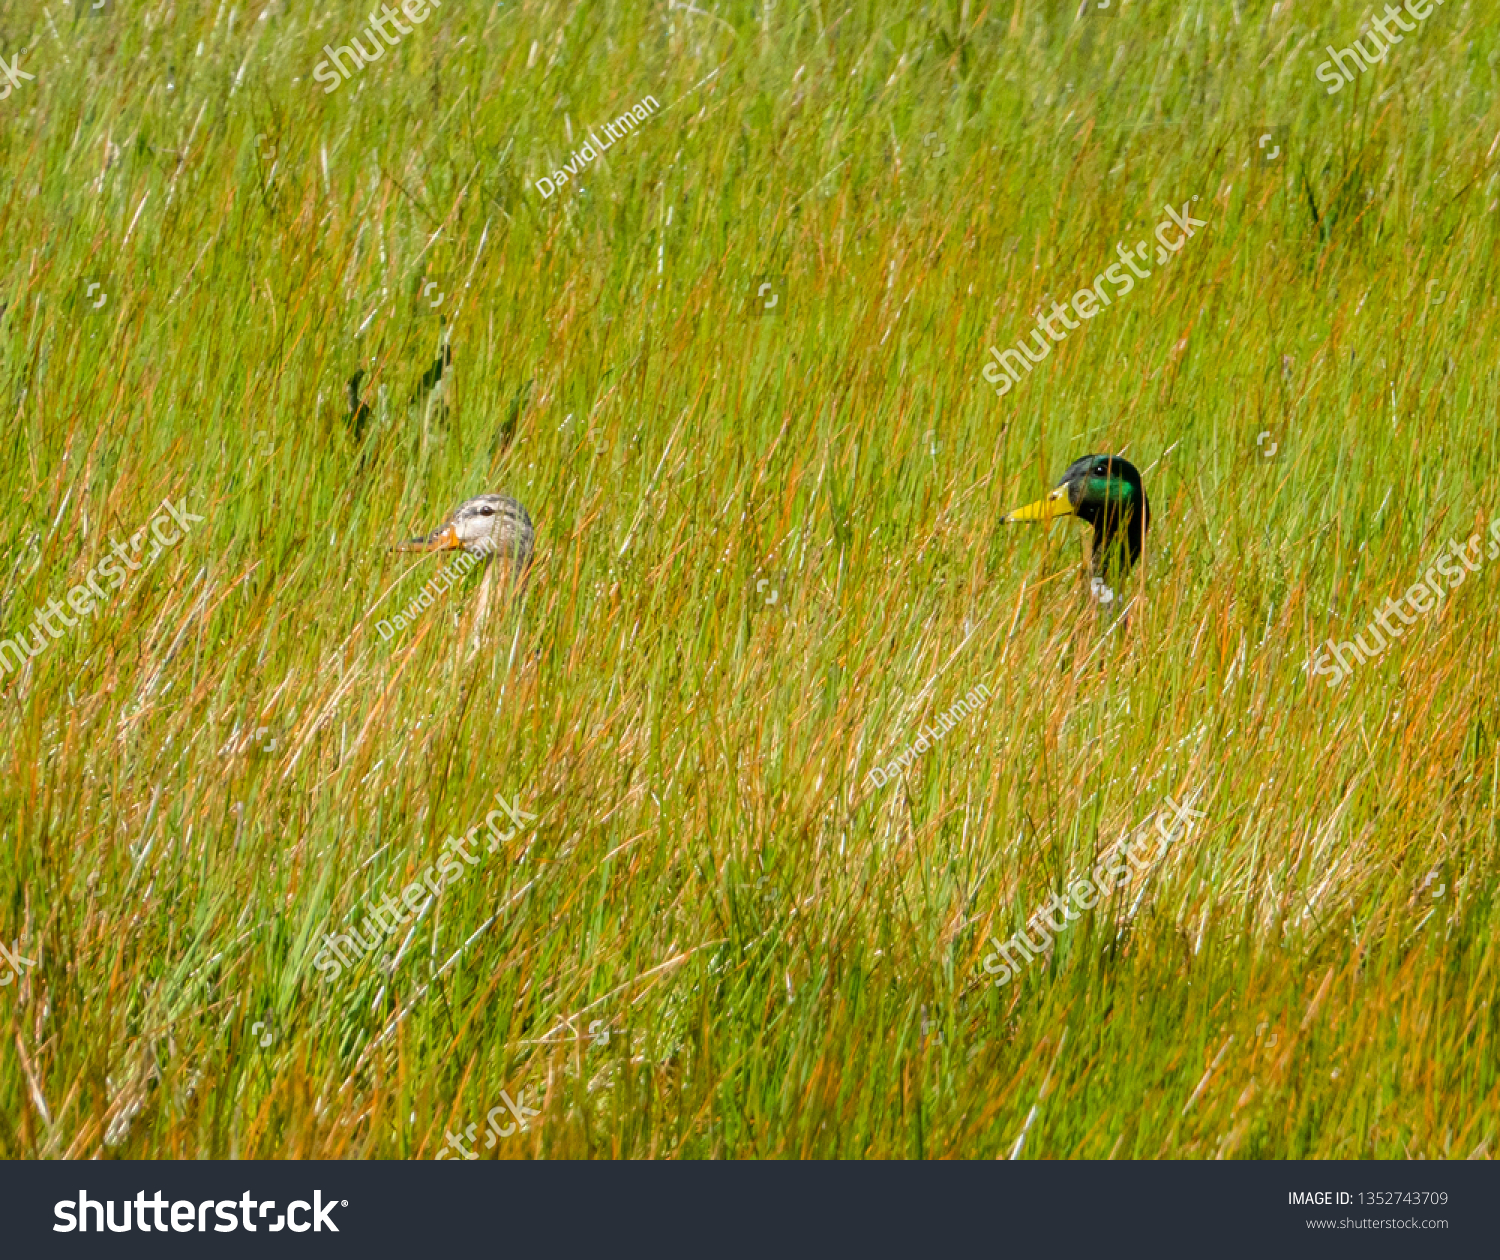 Two ducks cross through deep grass of a marshy grassland next to a vernal pond at Fort Ord National Monument, in Monterey, California.